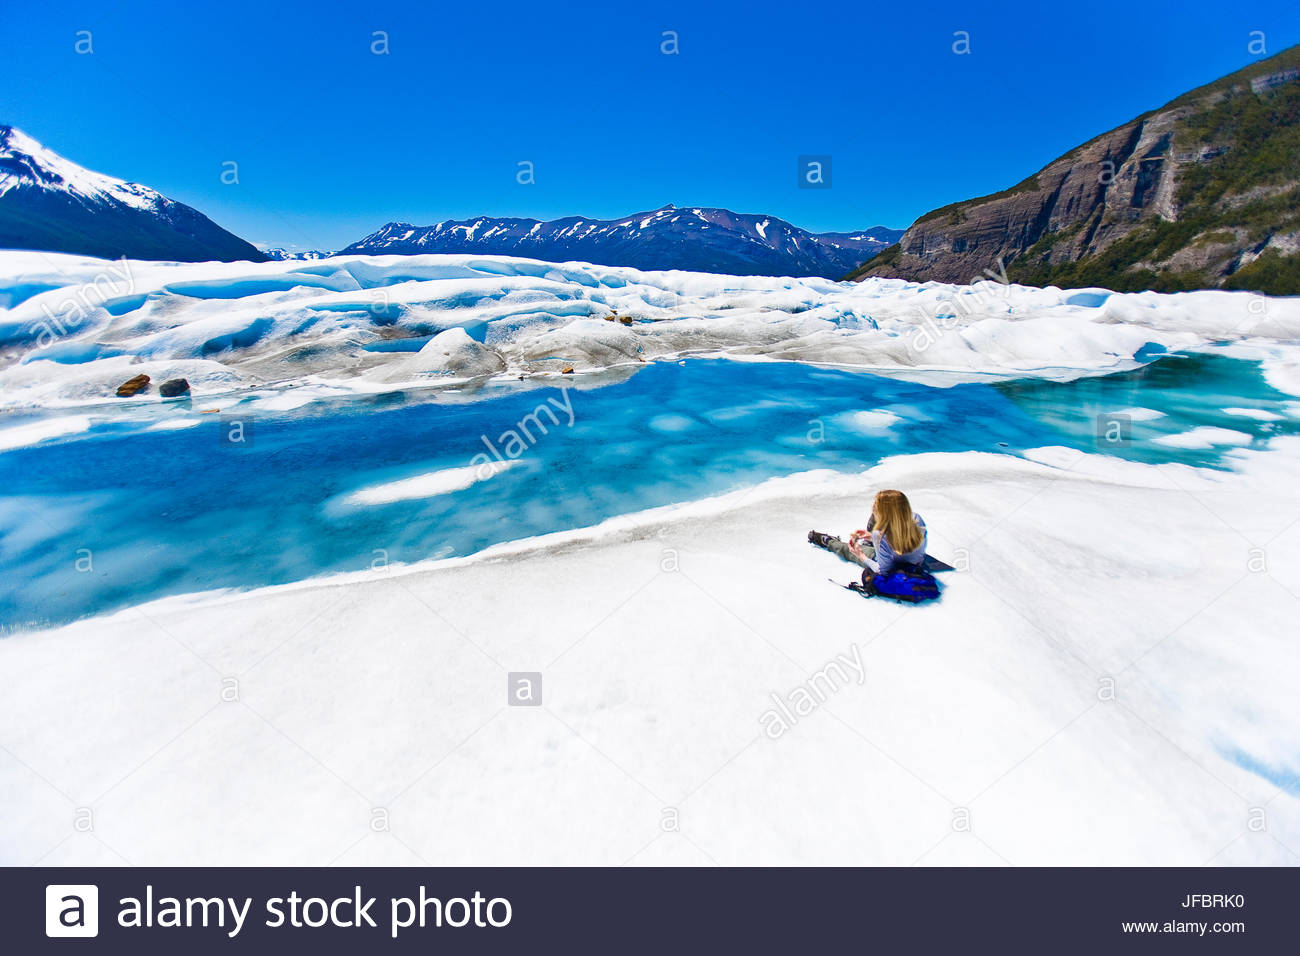 A hiker relaxing and taking a rest after exploring on the surface of the Perito Moreno glacier in Argentina. - Stock Image